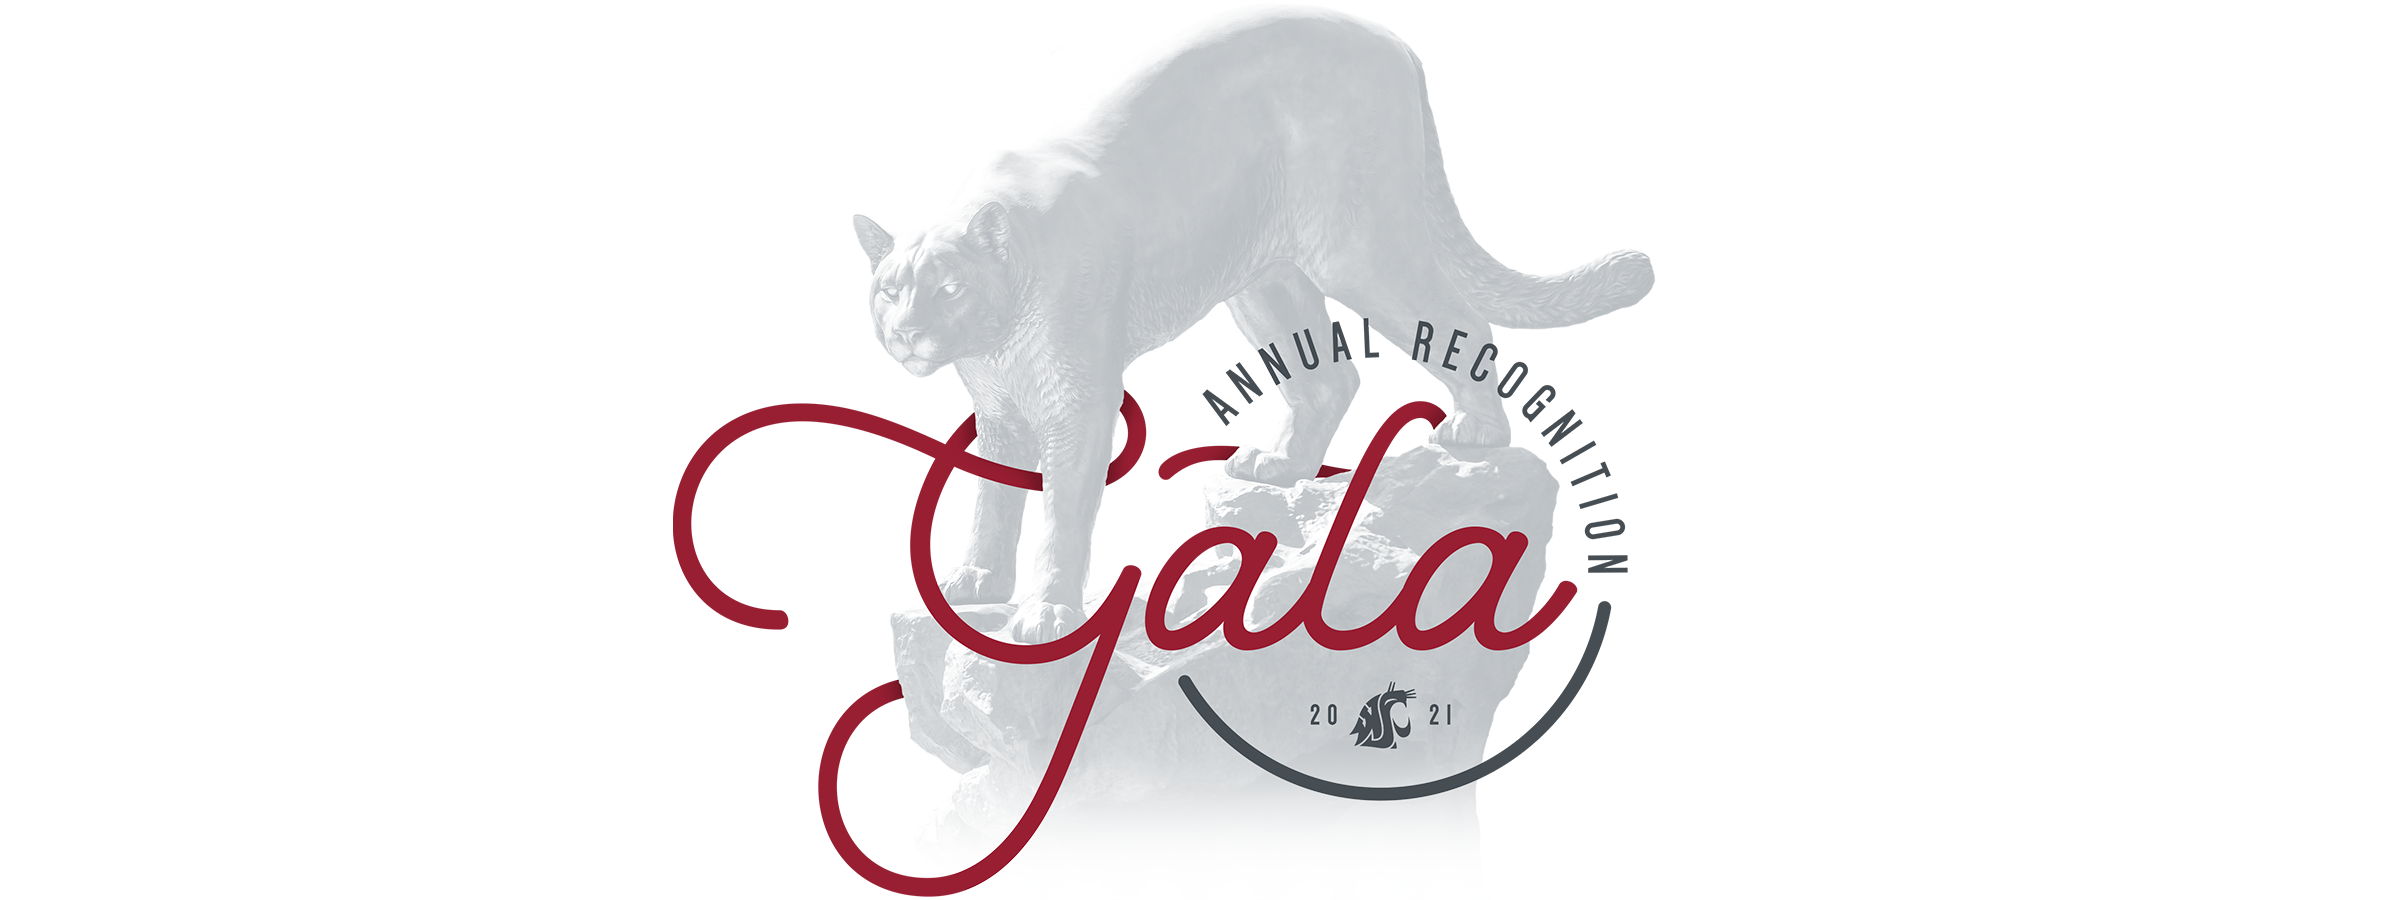 annual meeting and recognition gala registration